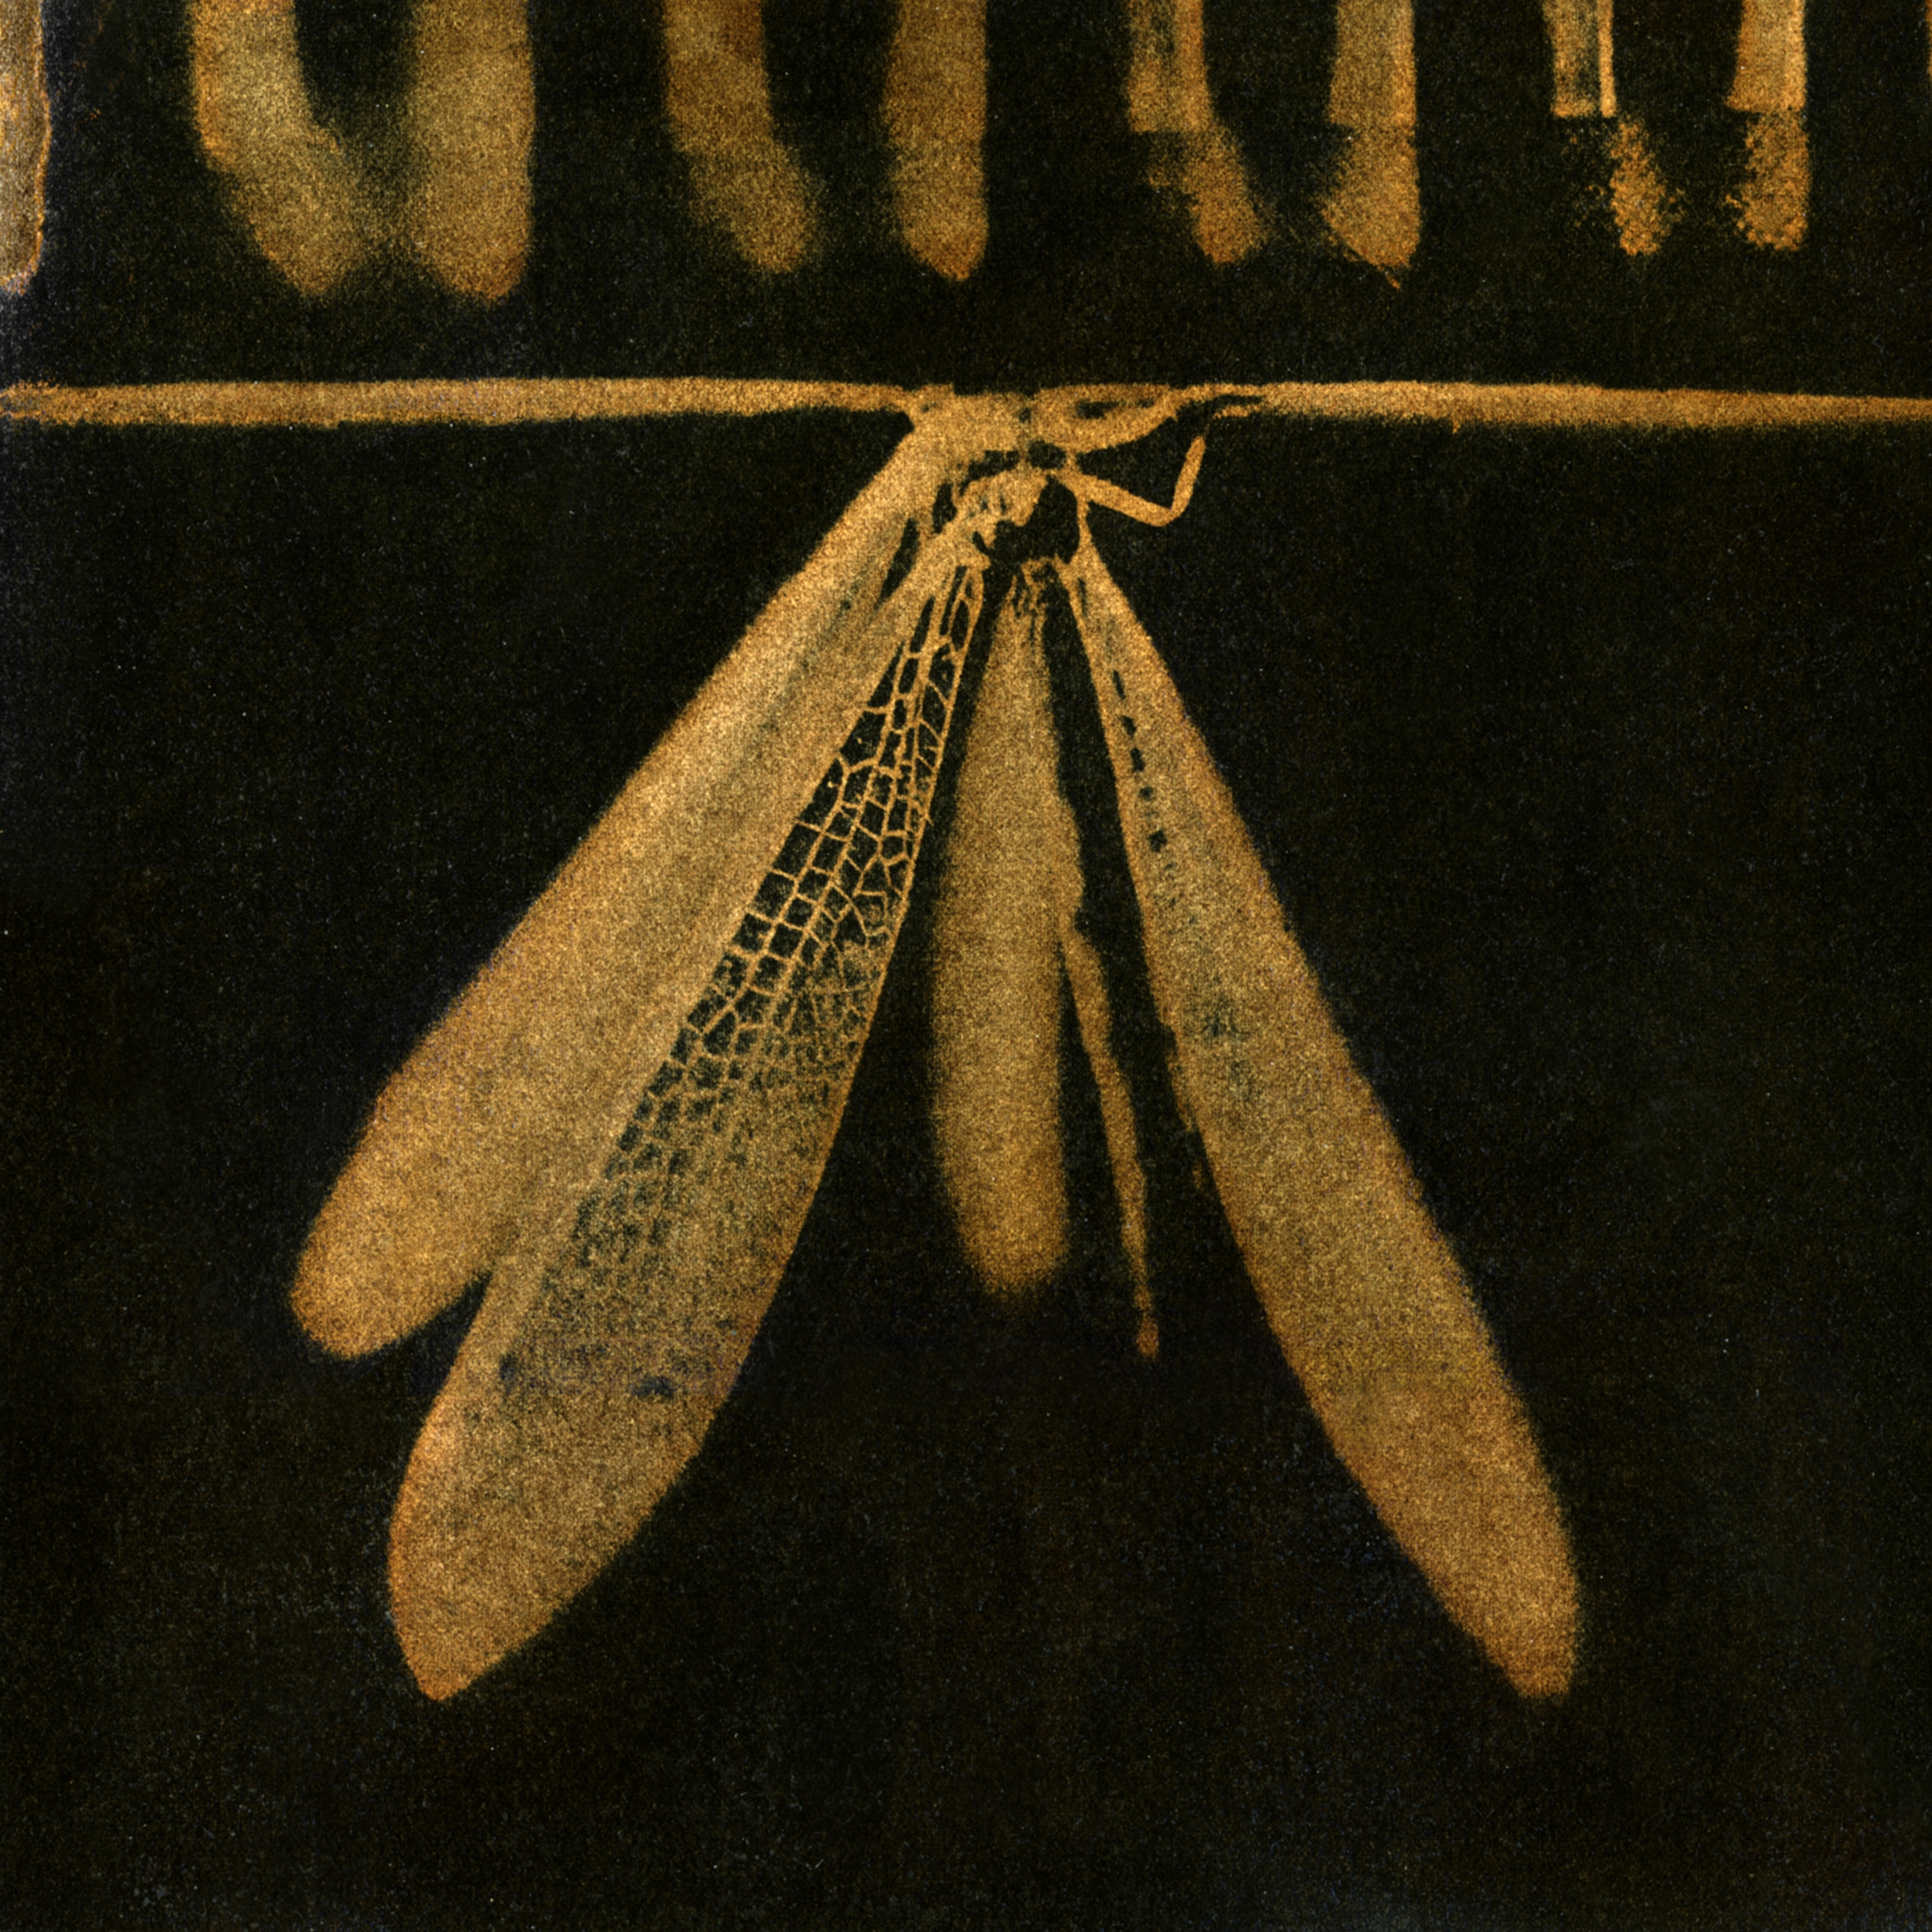 Lacewing, 2007